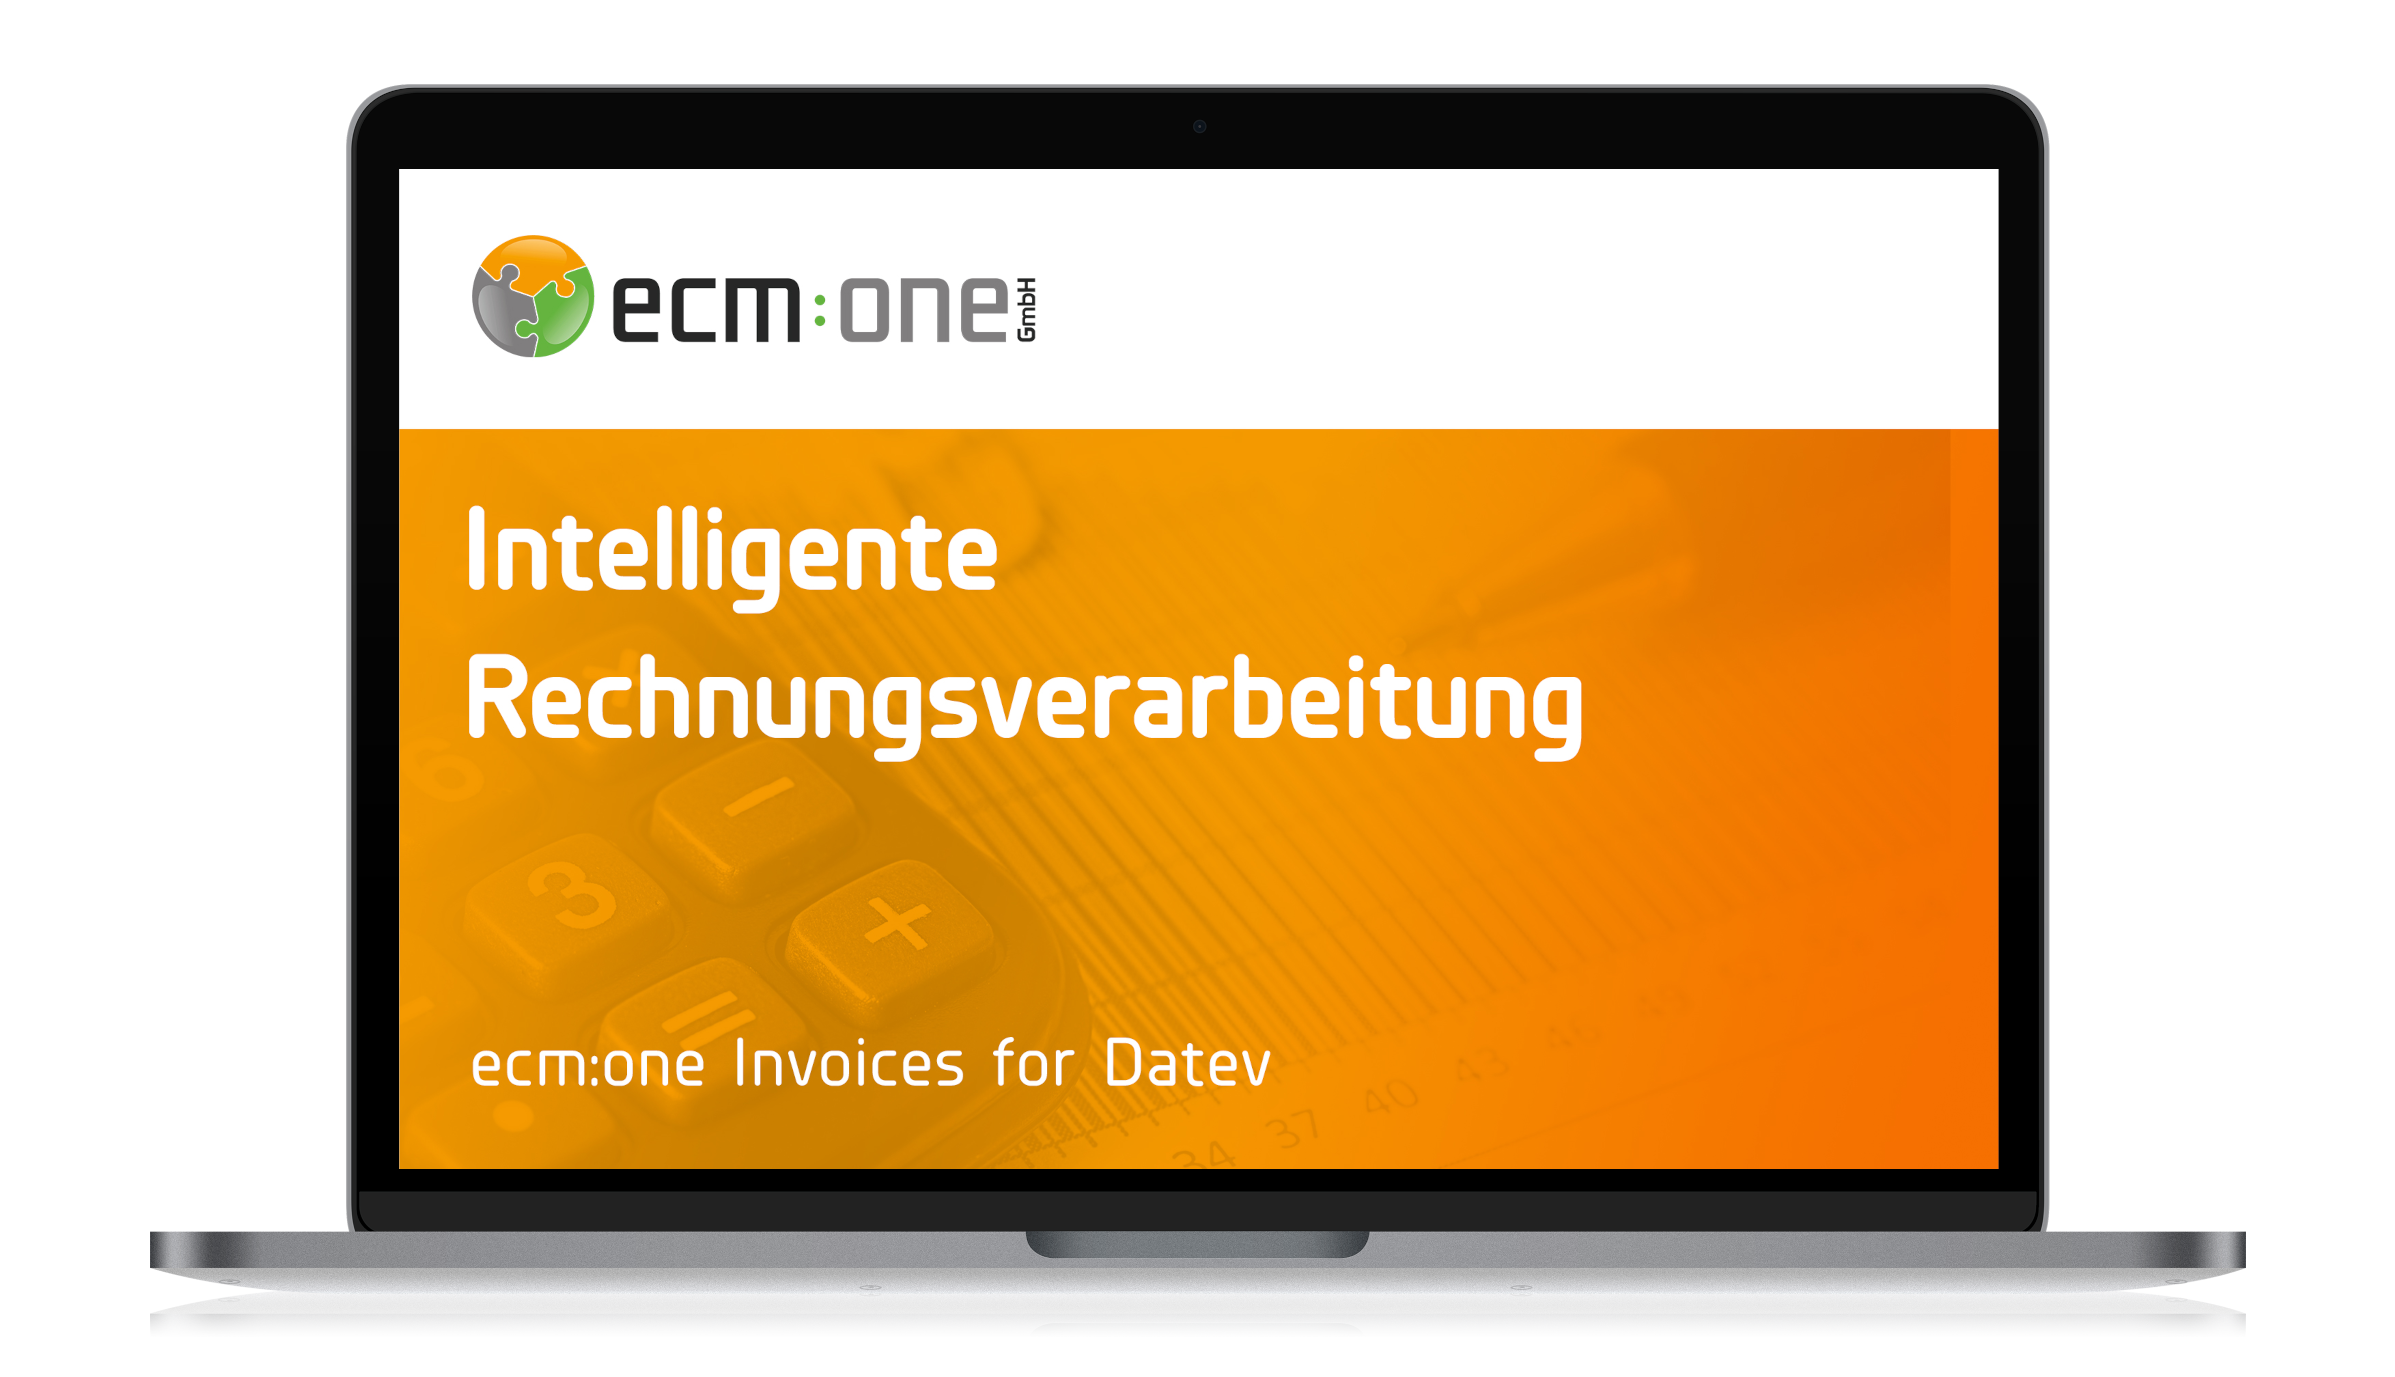 ecm:one Invoices for DATEV